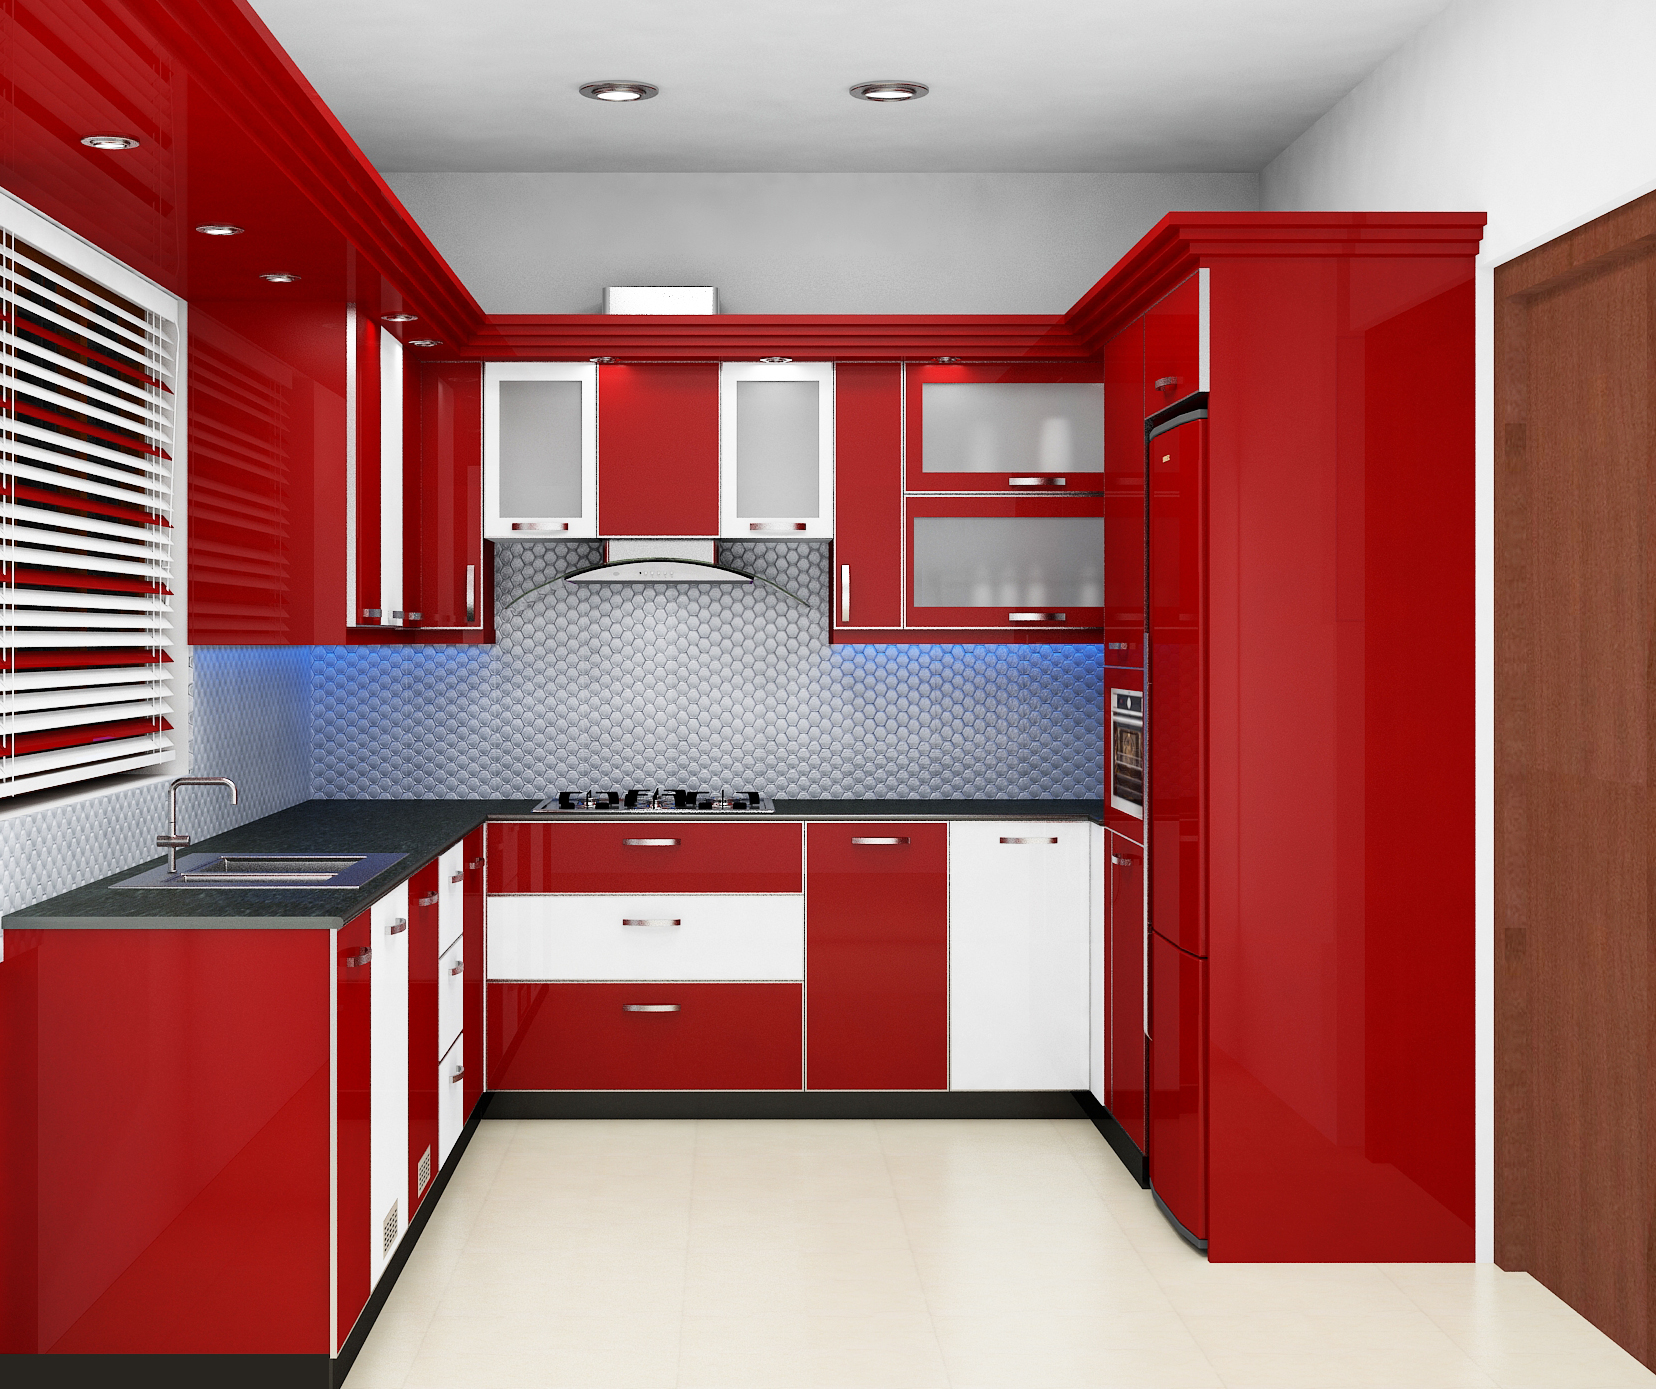 Exemplary and amazing modular kitchen home interior design for Home internal design